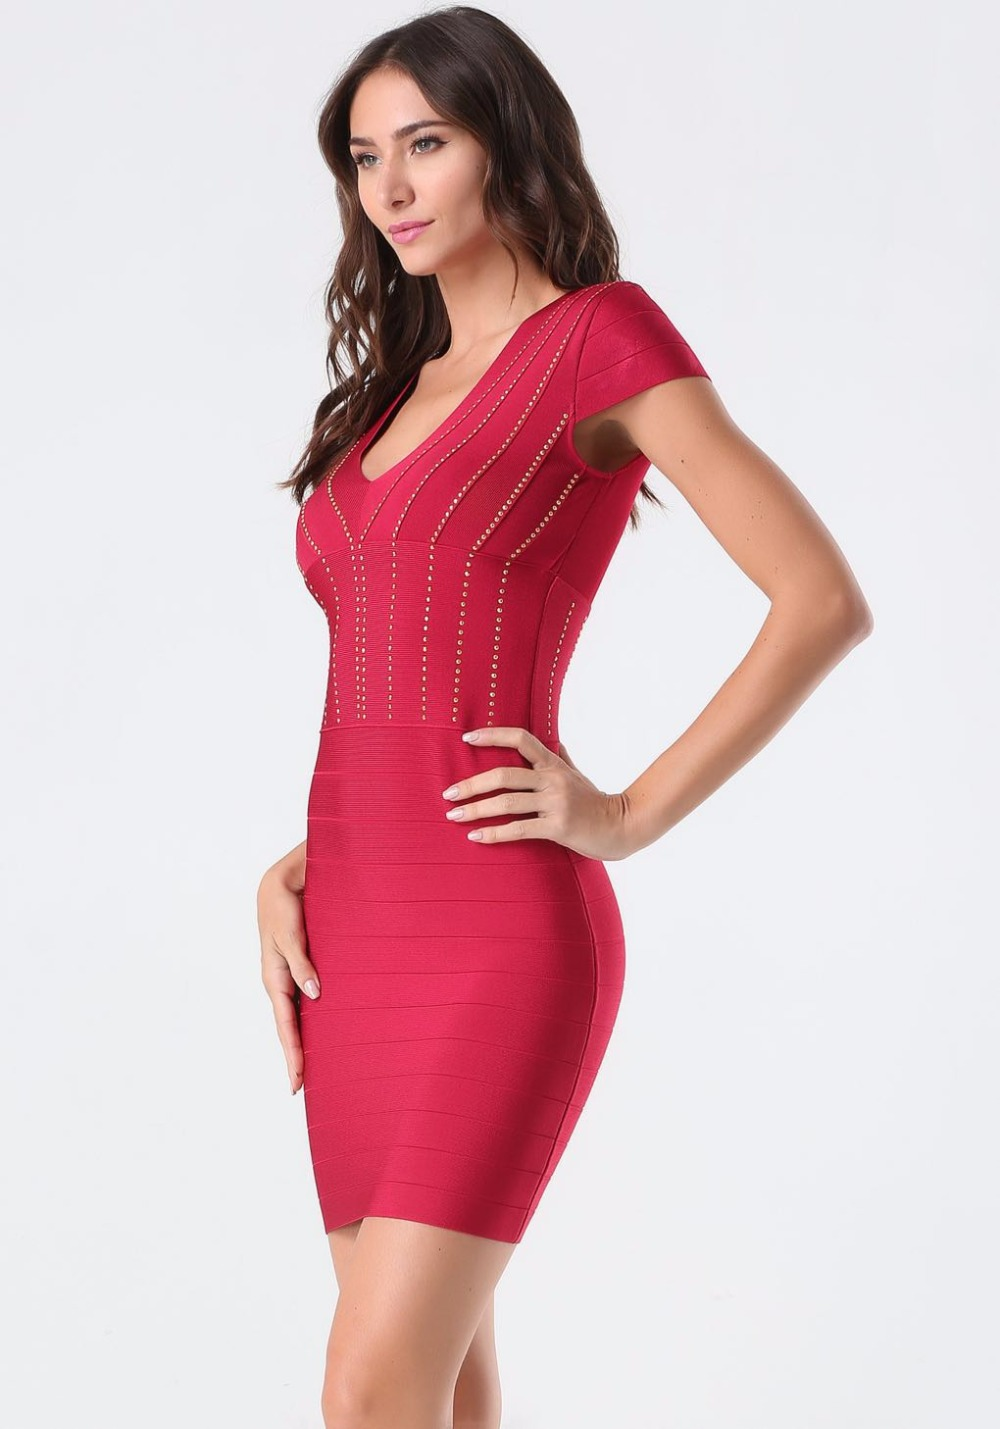 Wholesale Women Summer Dress 2018 Sexy V Neck Red Rayon ... Red Dresses For Women 2018